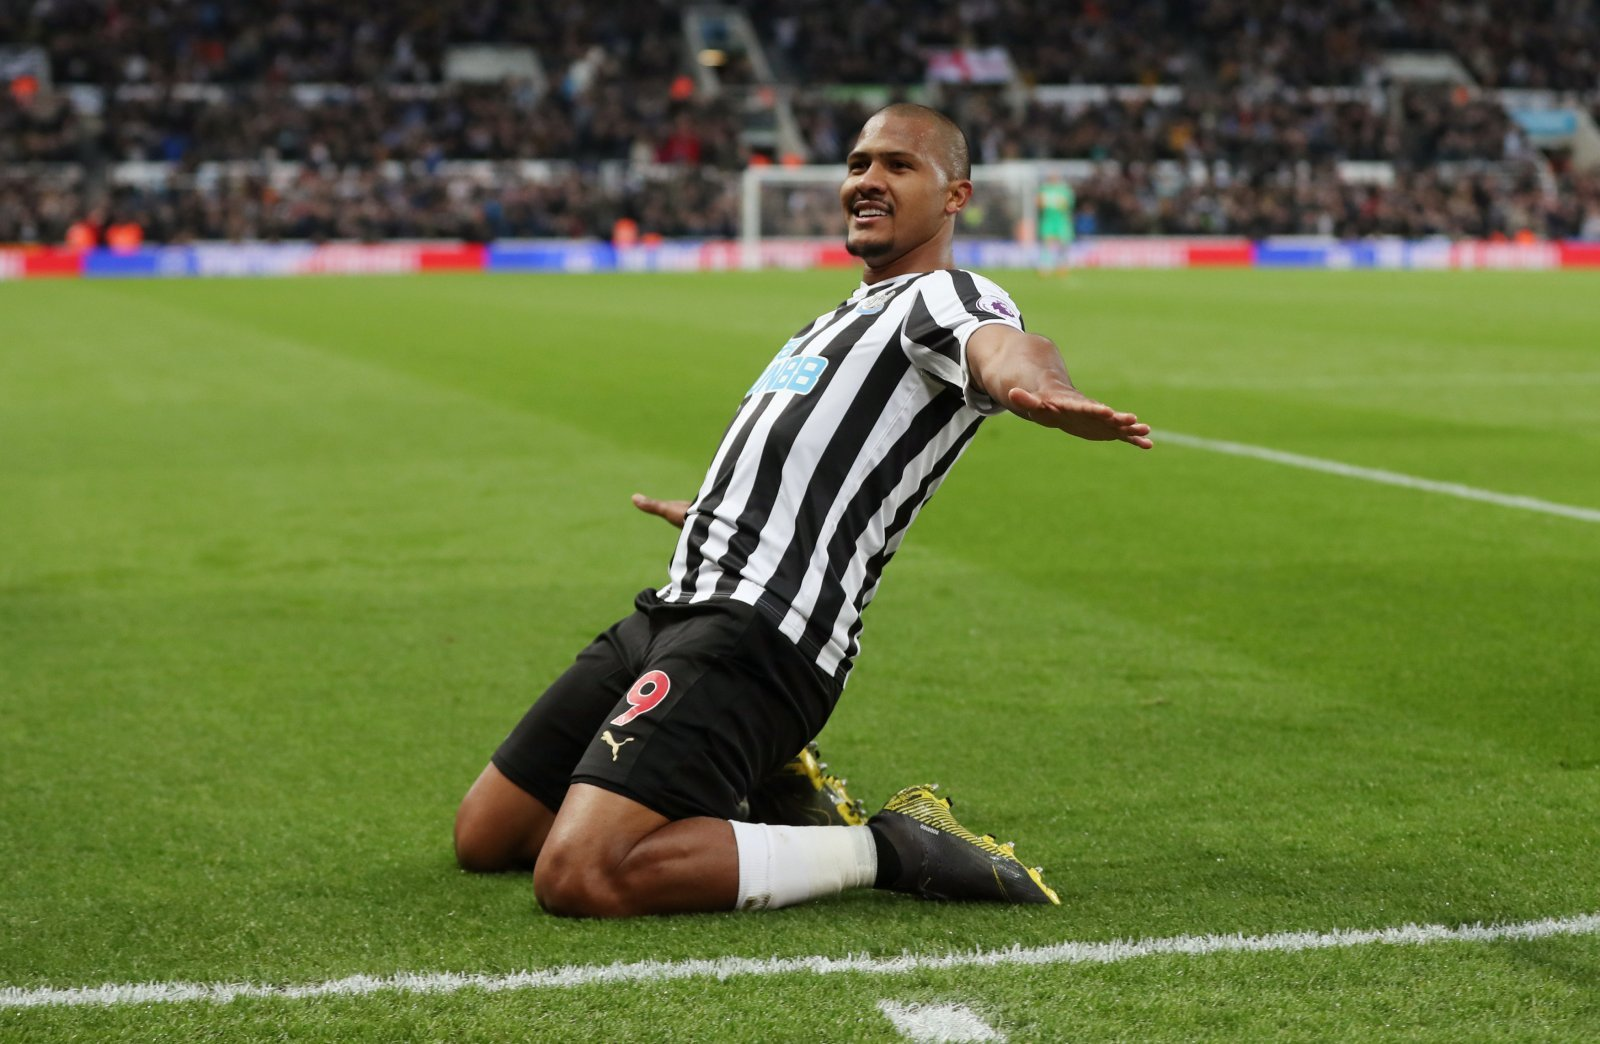 Wolves: Salomon Rondon looks likely to snub any potential advance